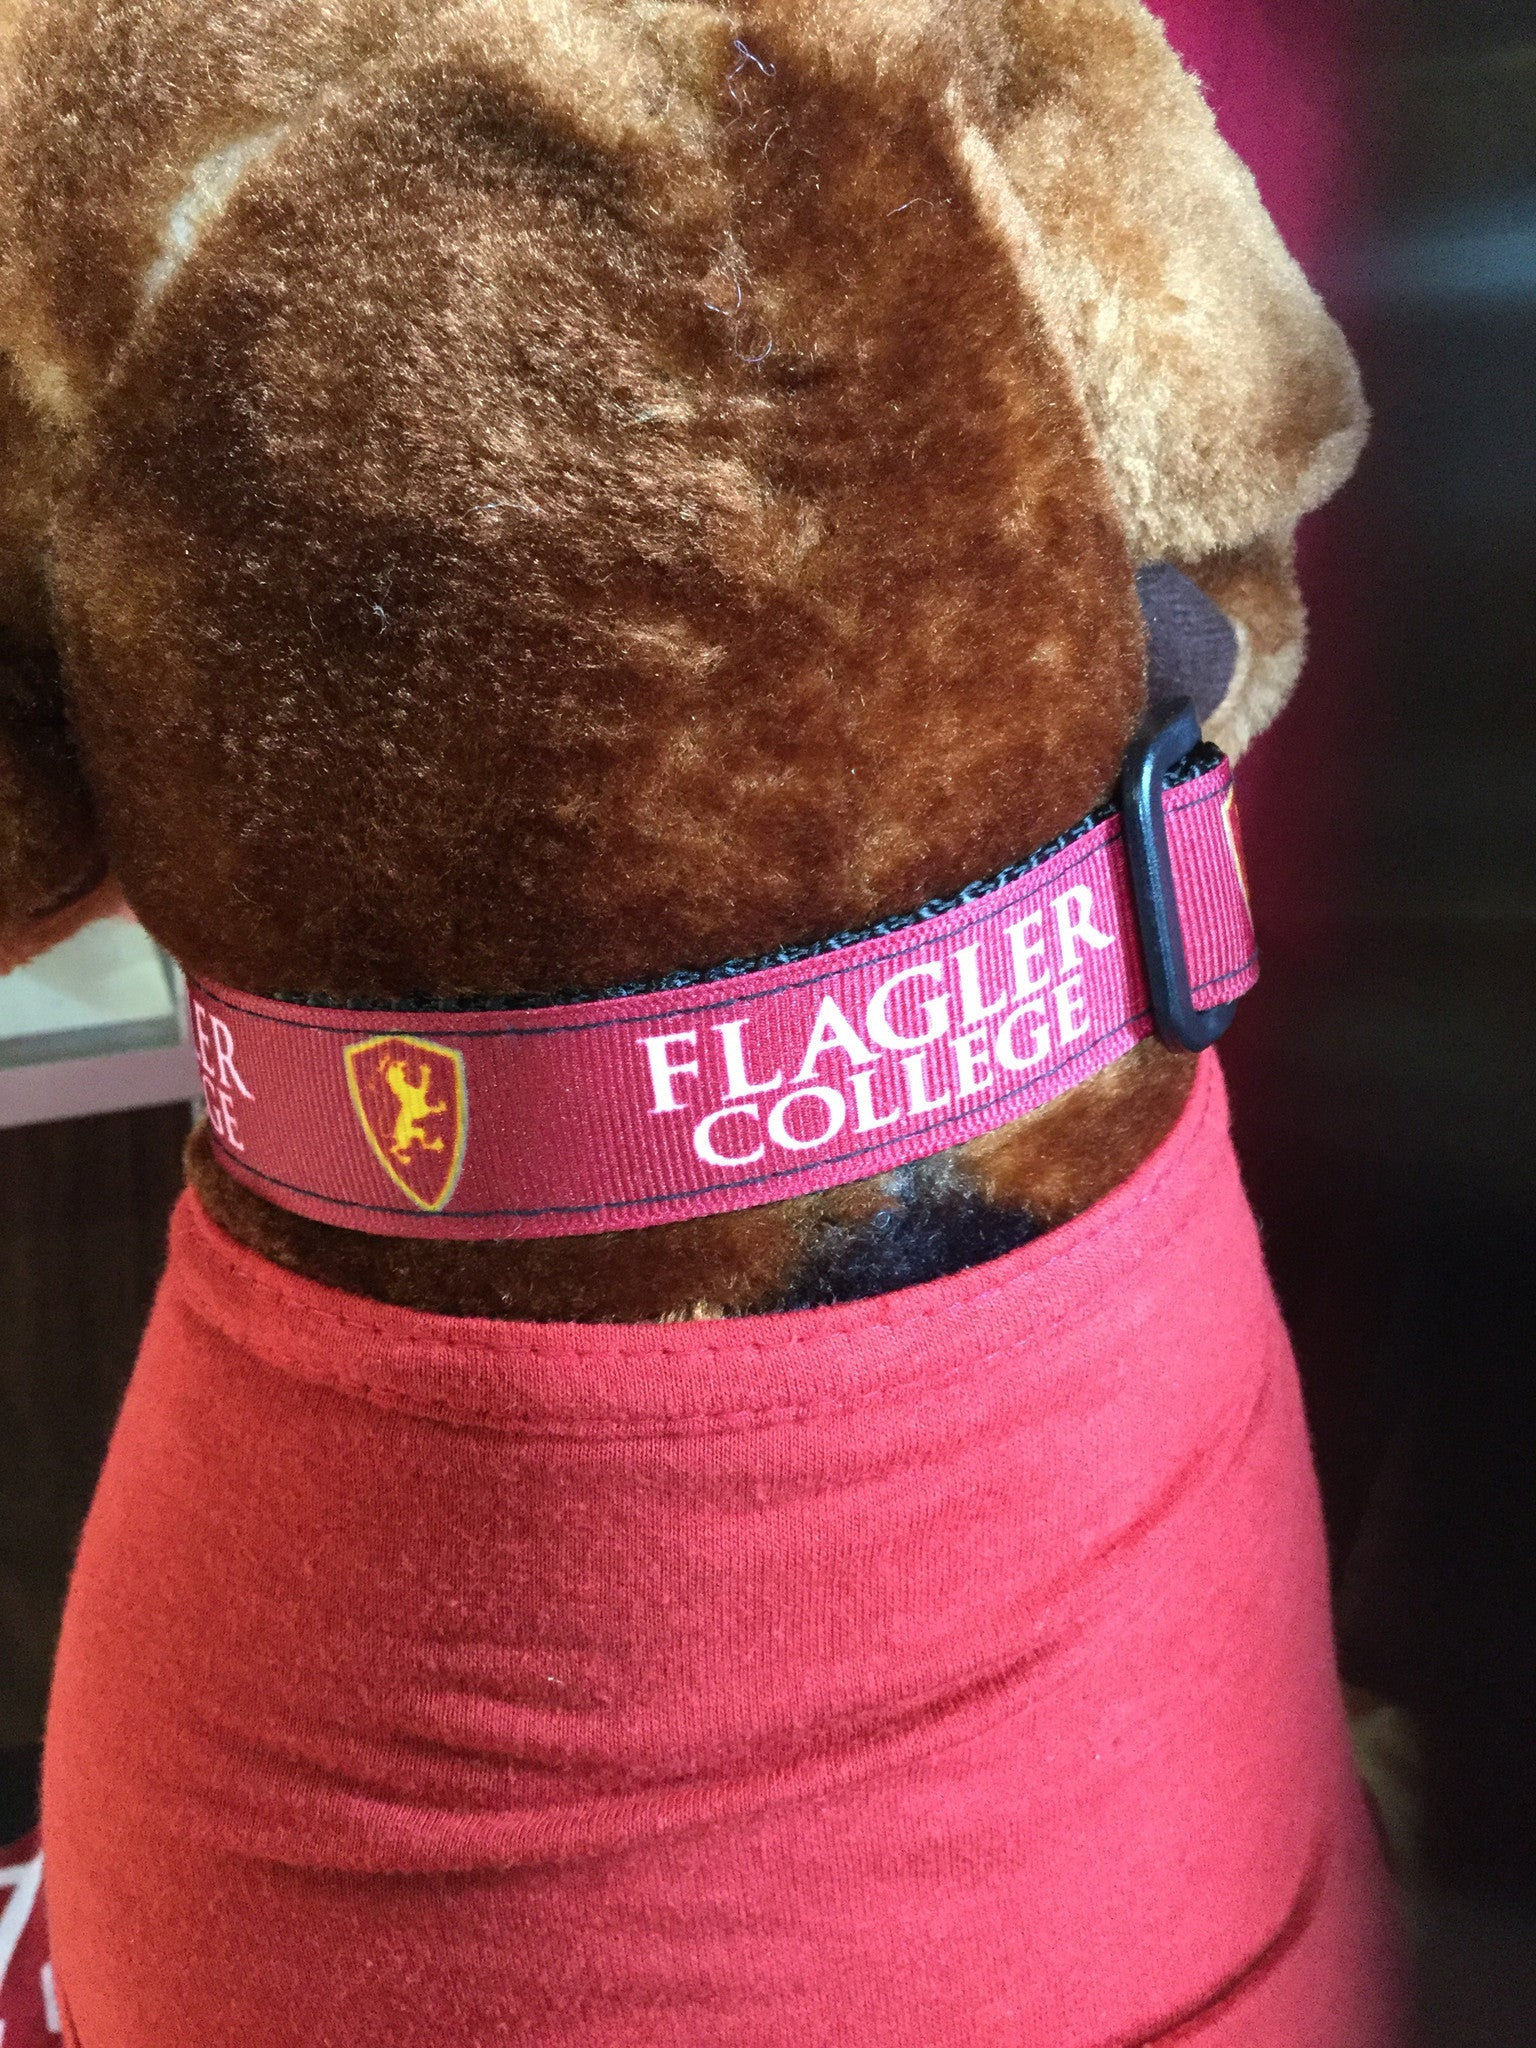 red dog collar with Flagler college printed in white and shield printed in red and yellow